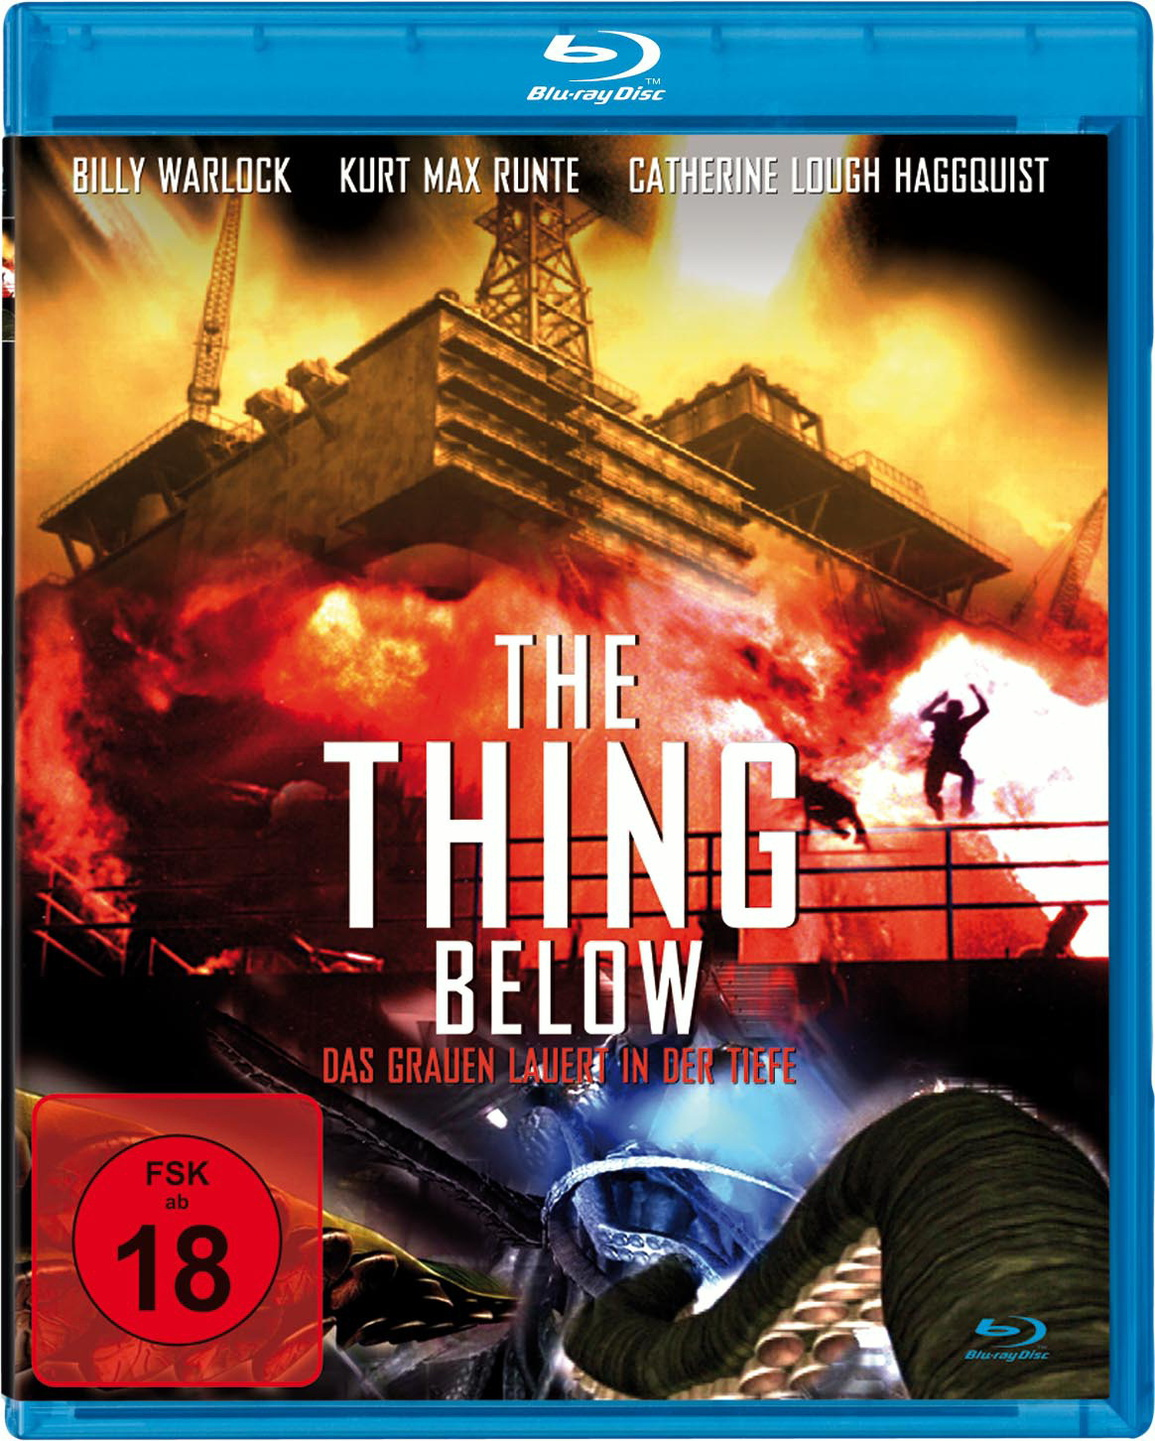 The.Thing.Below.2004.German.DL.1080p.BluRay.x264-ENCOUNTERS